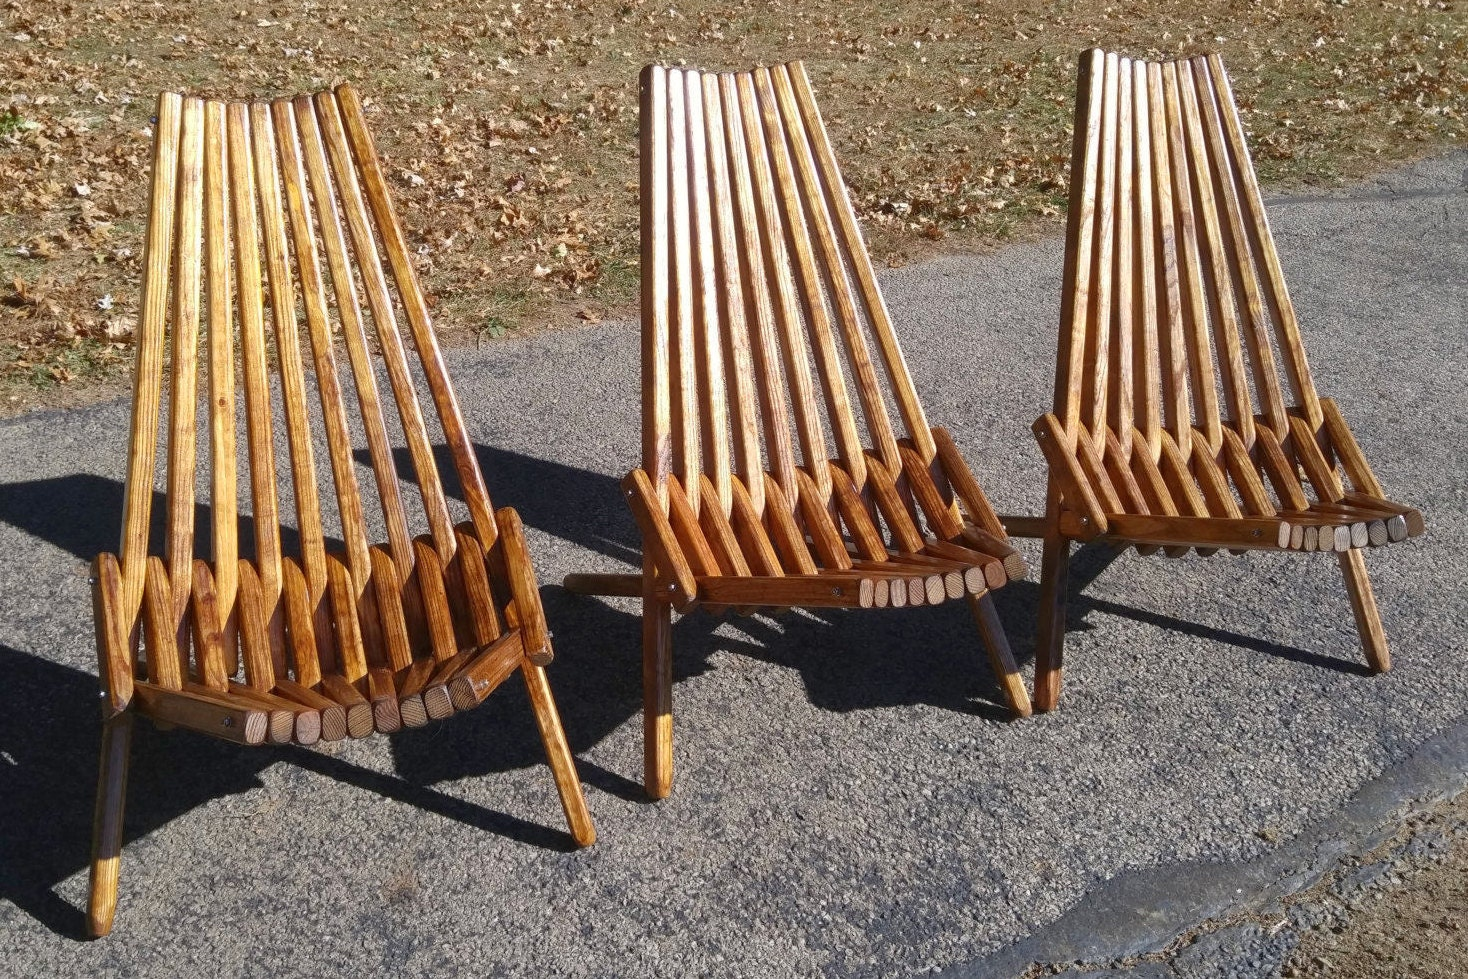 Wood folding chair outdoor - Patio Chair Outdoor Furniture Adirondack Chair Accent Chair Kentucky Stick Chair